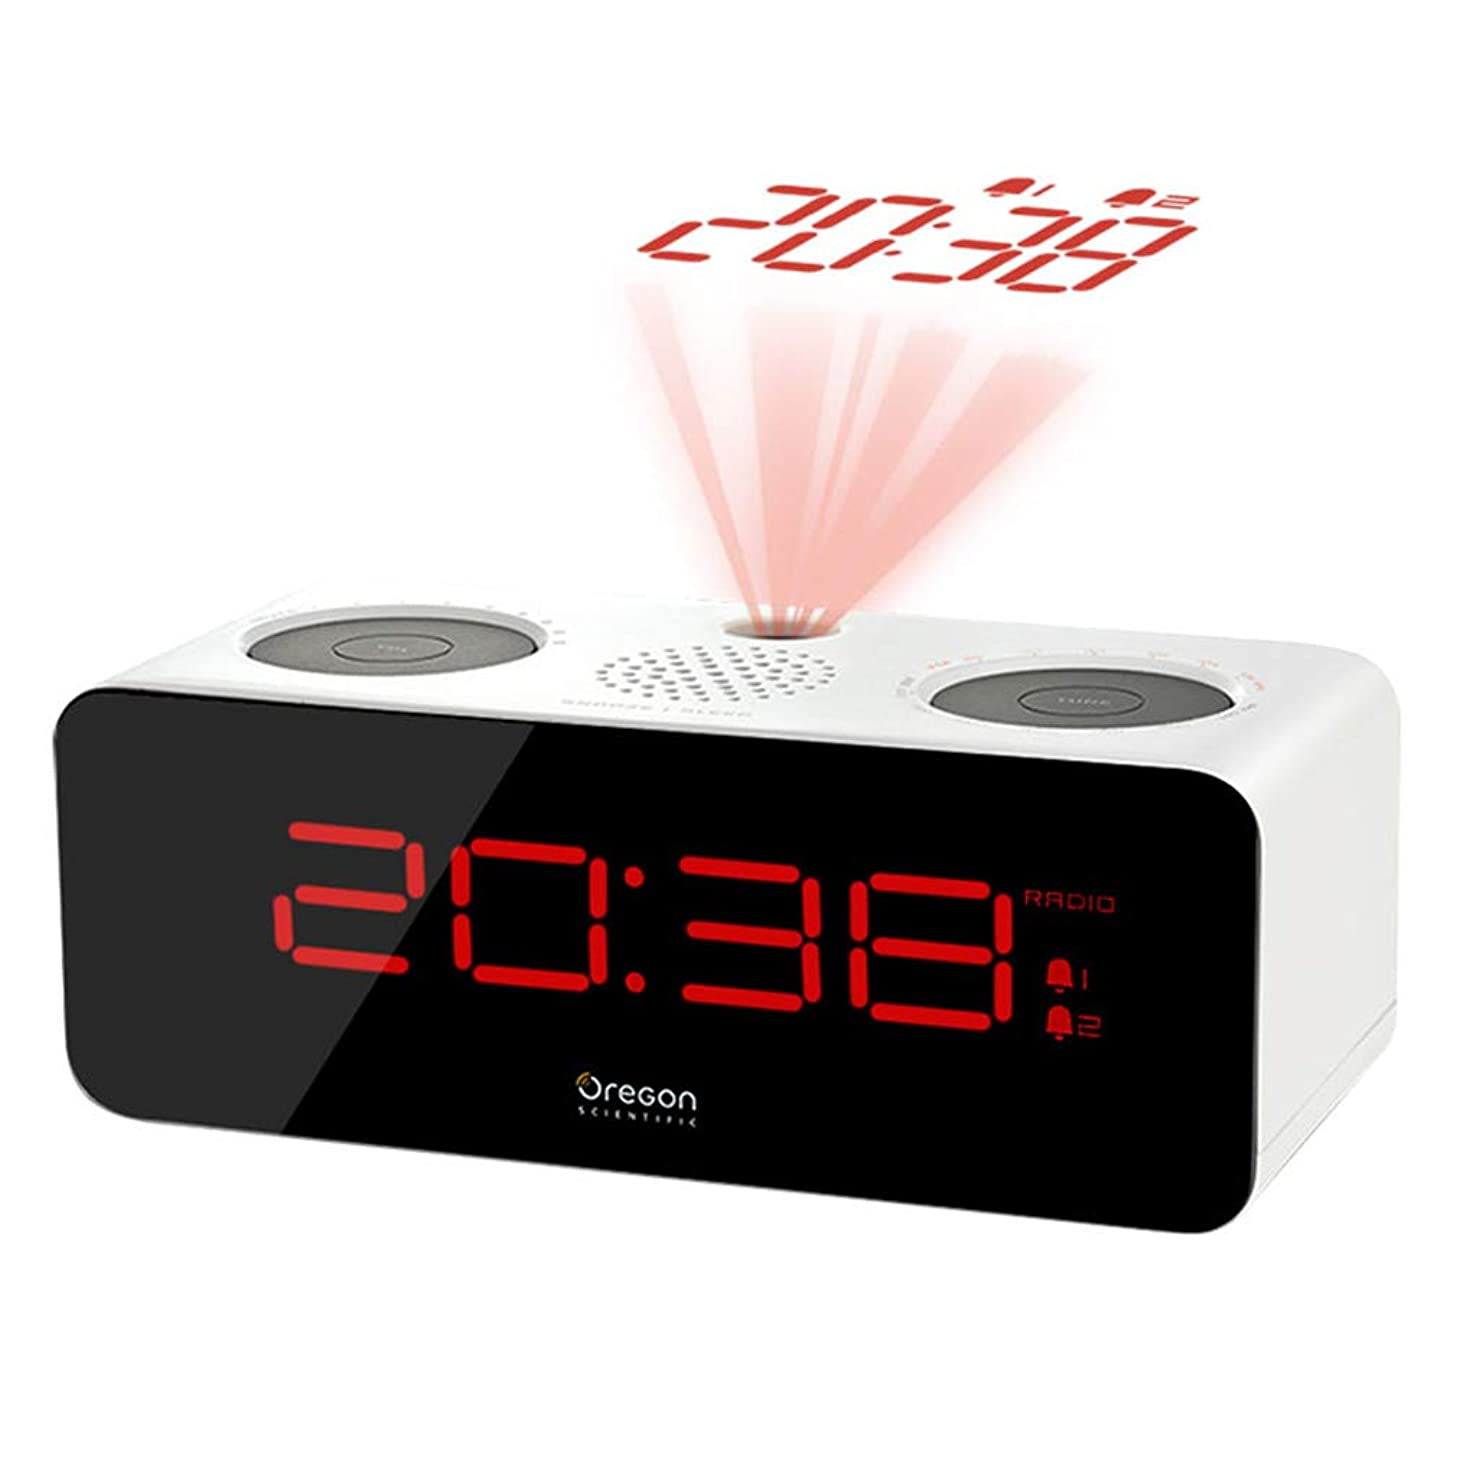 Li-lamp LED Projection Alarm Clocks Radio Display Snooze Timer Kitchen Bedrooms Kids Gifts Students New Year Presents Charger Battery Backup Projector Ceiling Loud Big Number